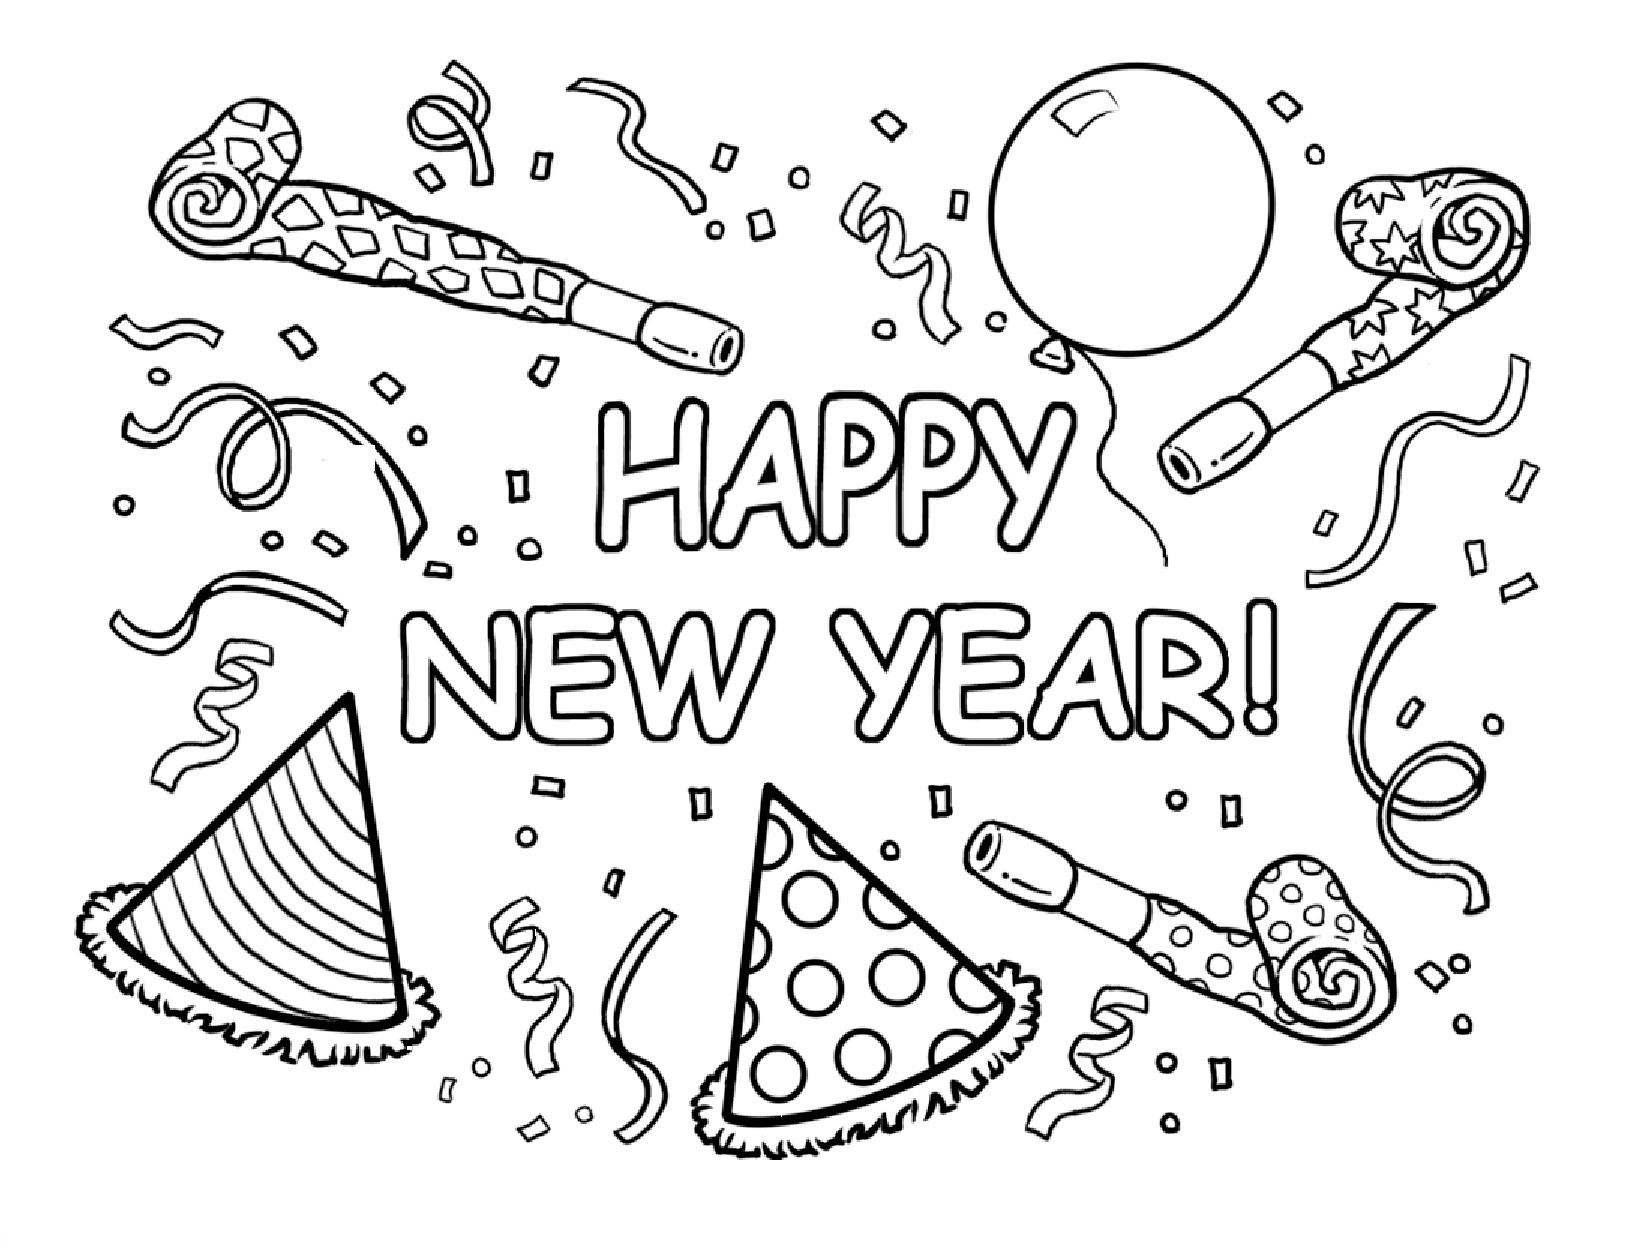 Christmas And New Year Coloring Pages With Happy Best For Kids